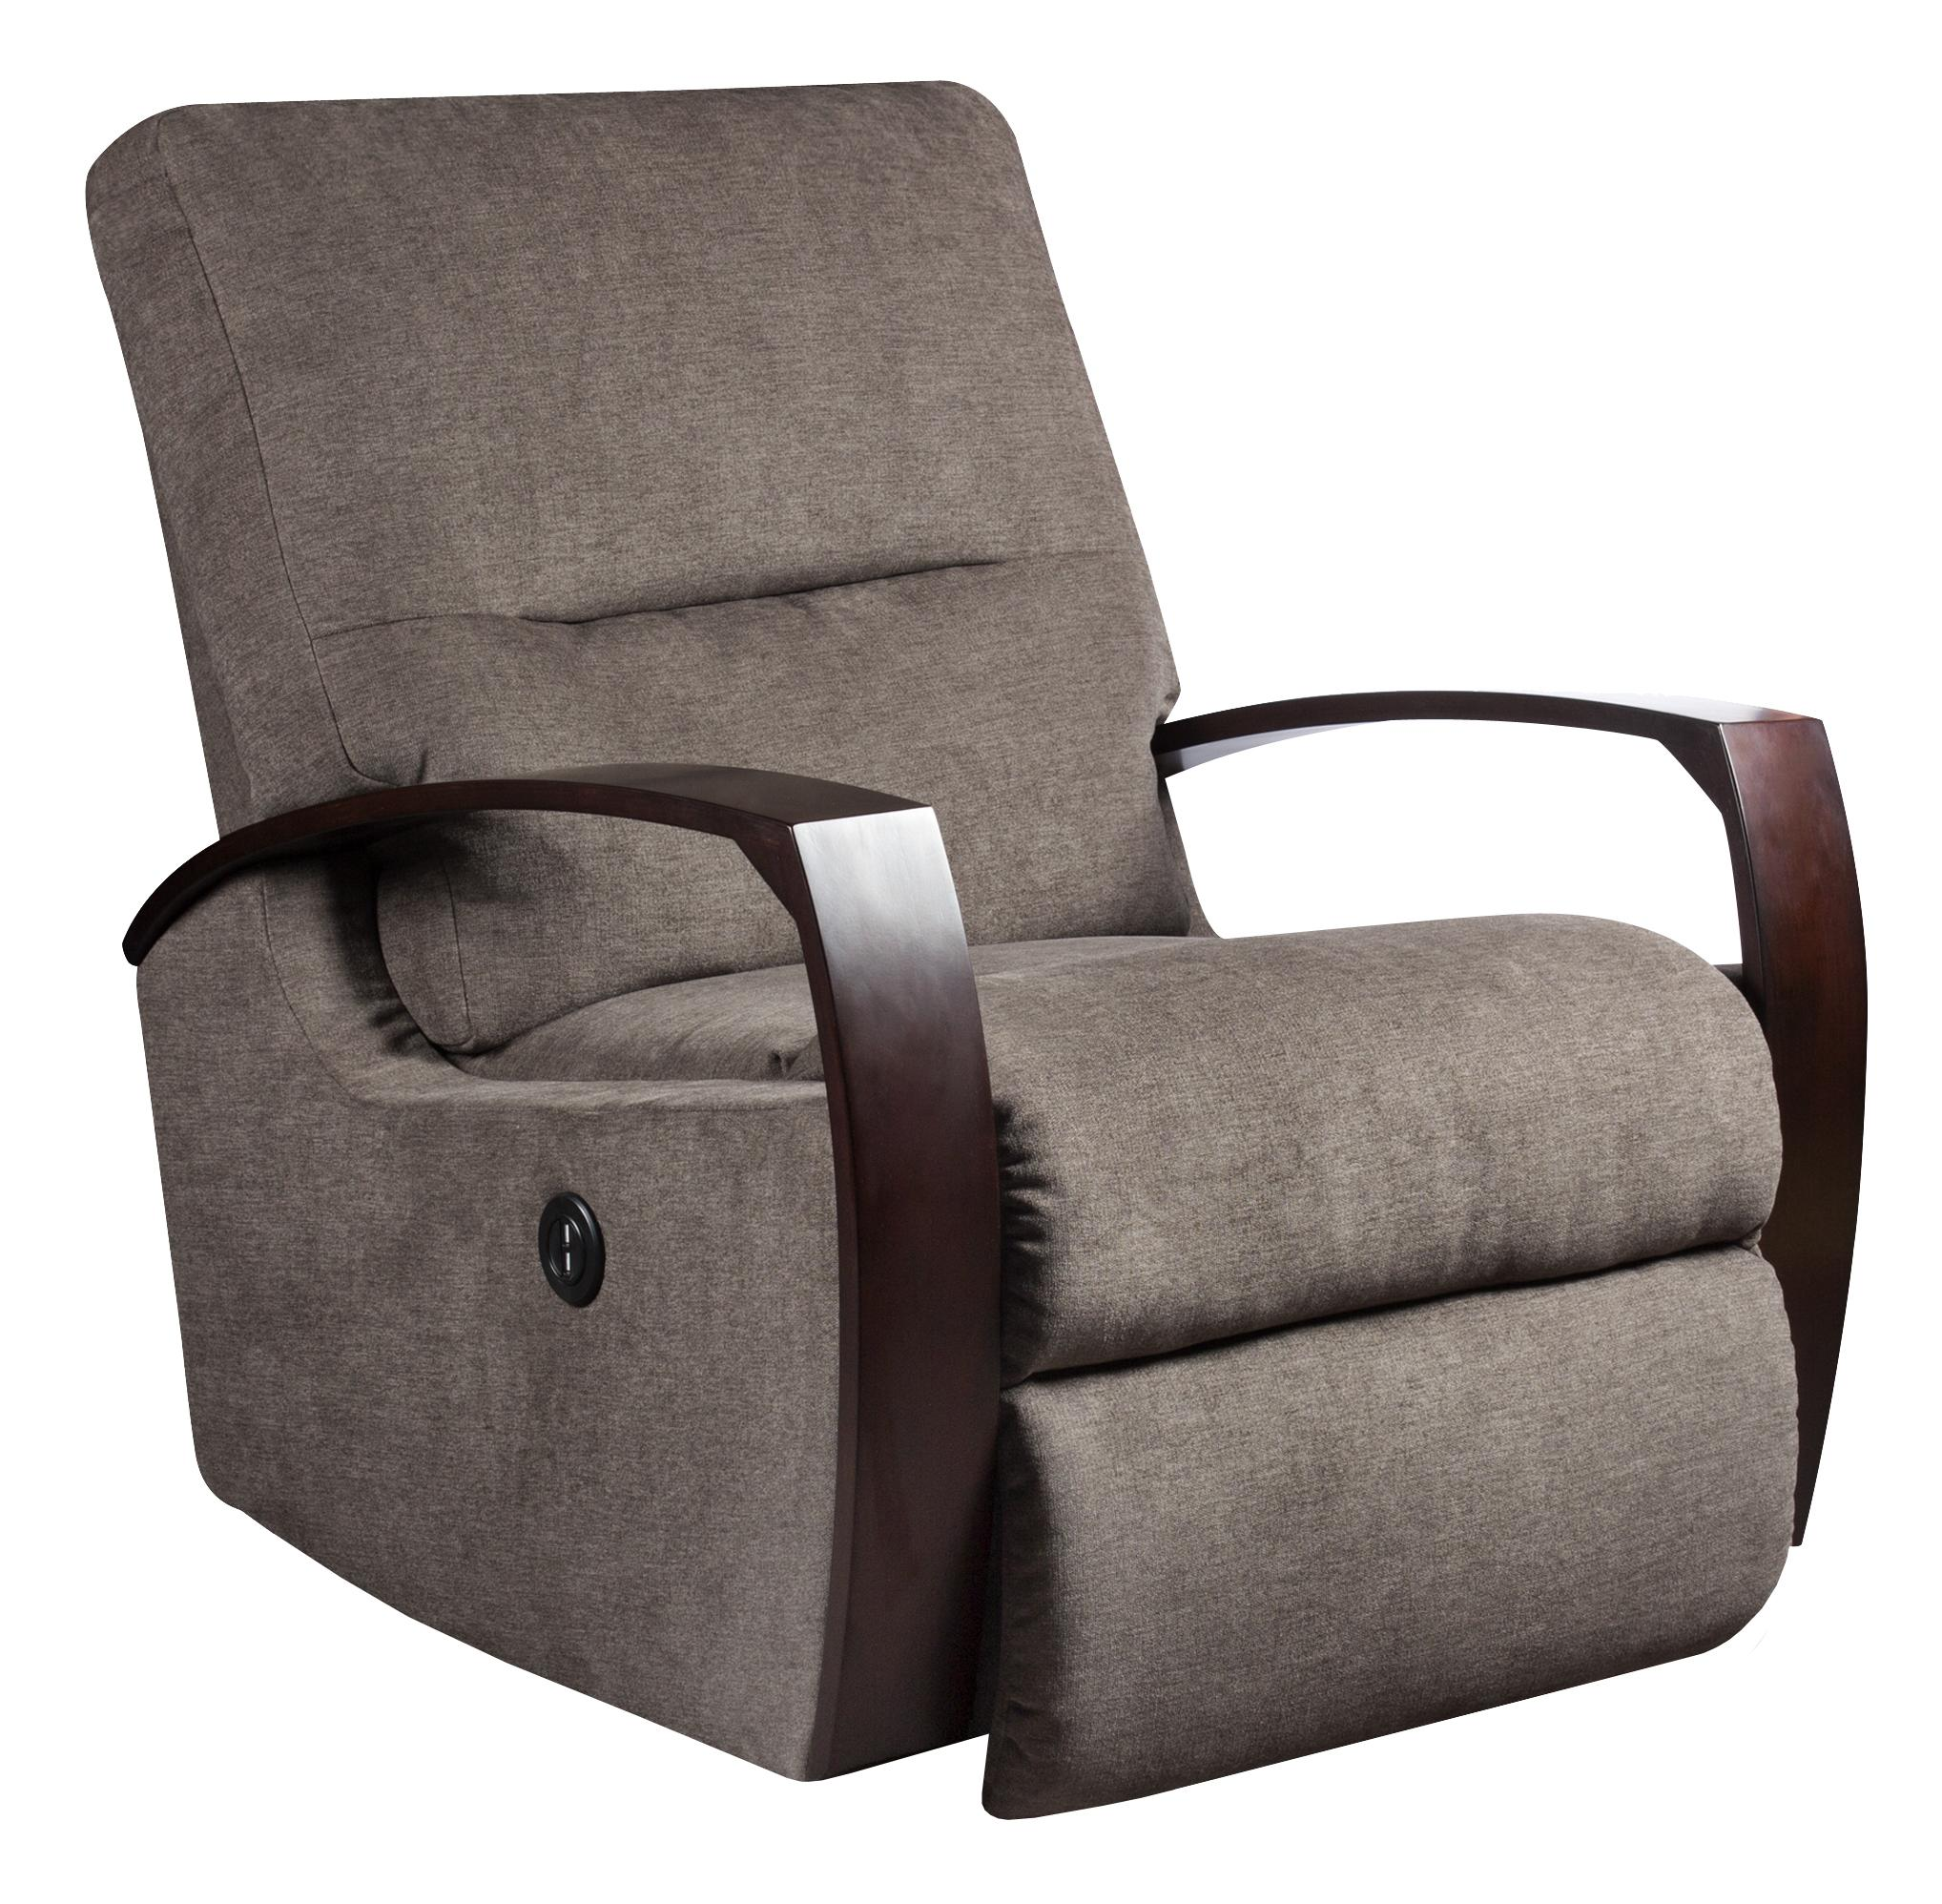 Rocker recliner with wooden arms by southern motion wolf and gardiner wolf furniture - Stylish rocker recliner ...